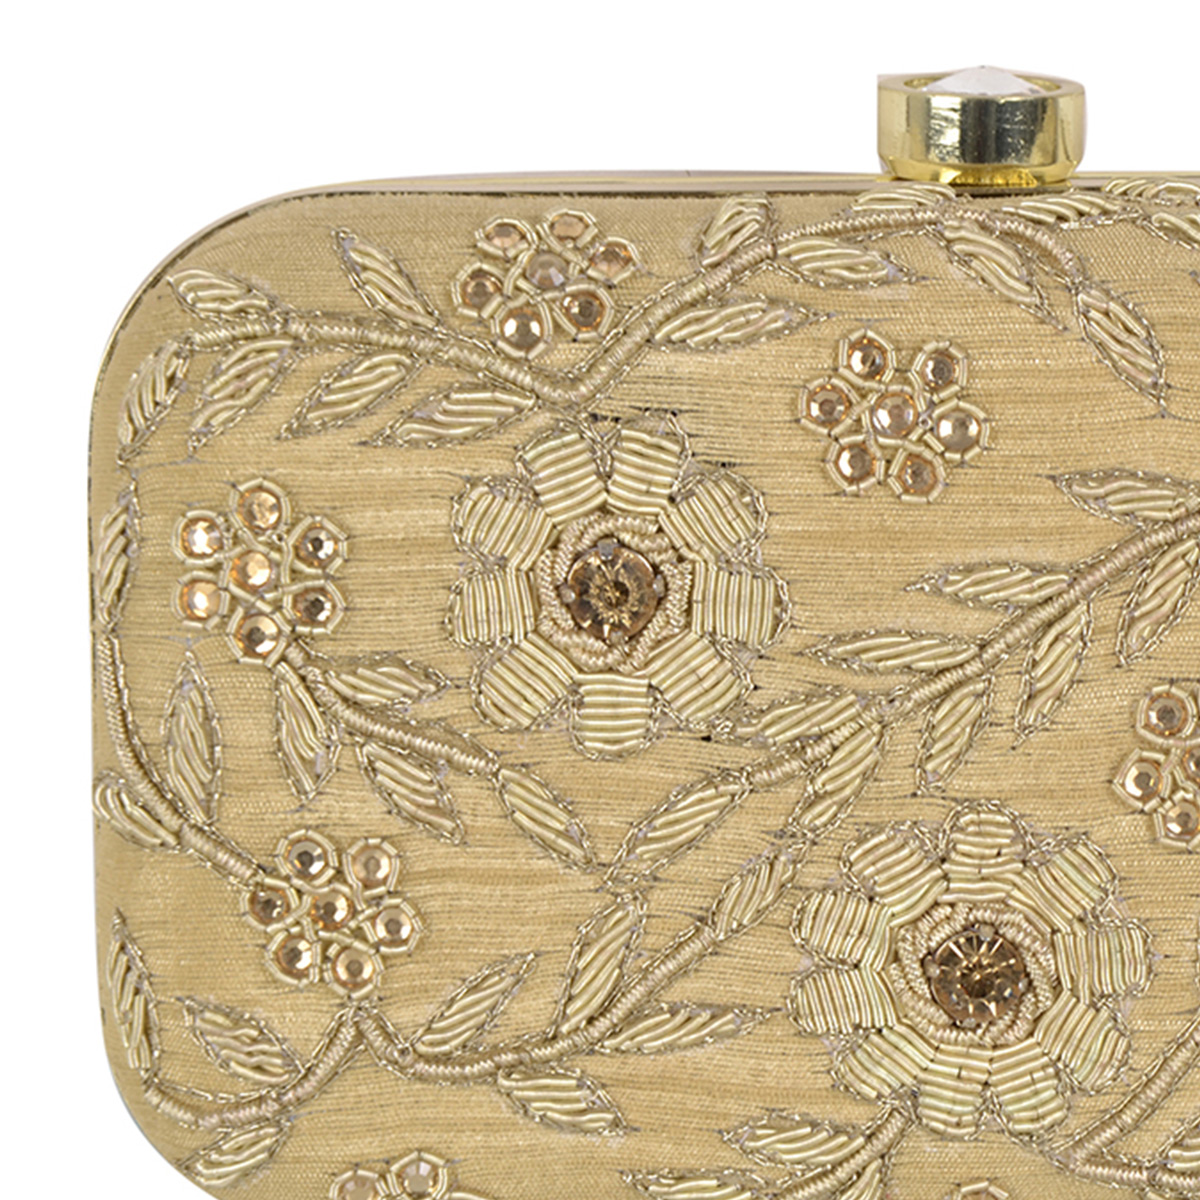 Alluring Beige Colored Handcrafted Partywear Embroidered Clutch